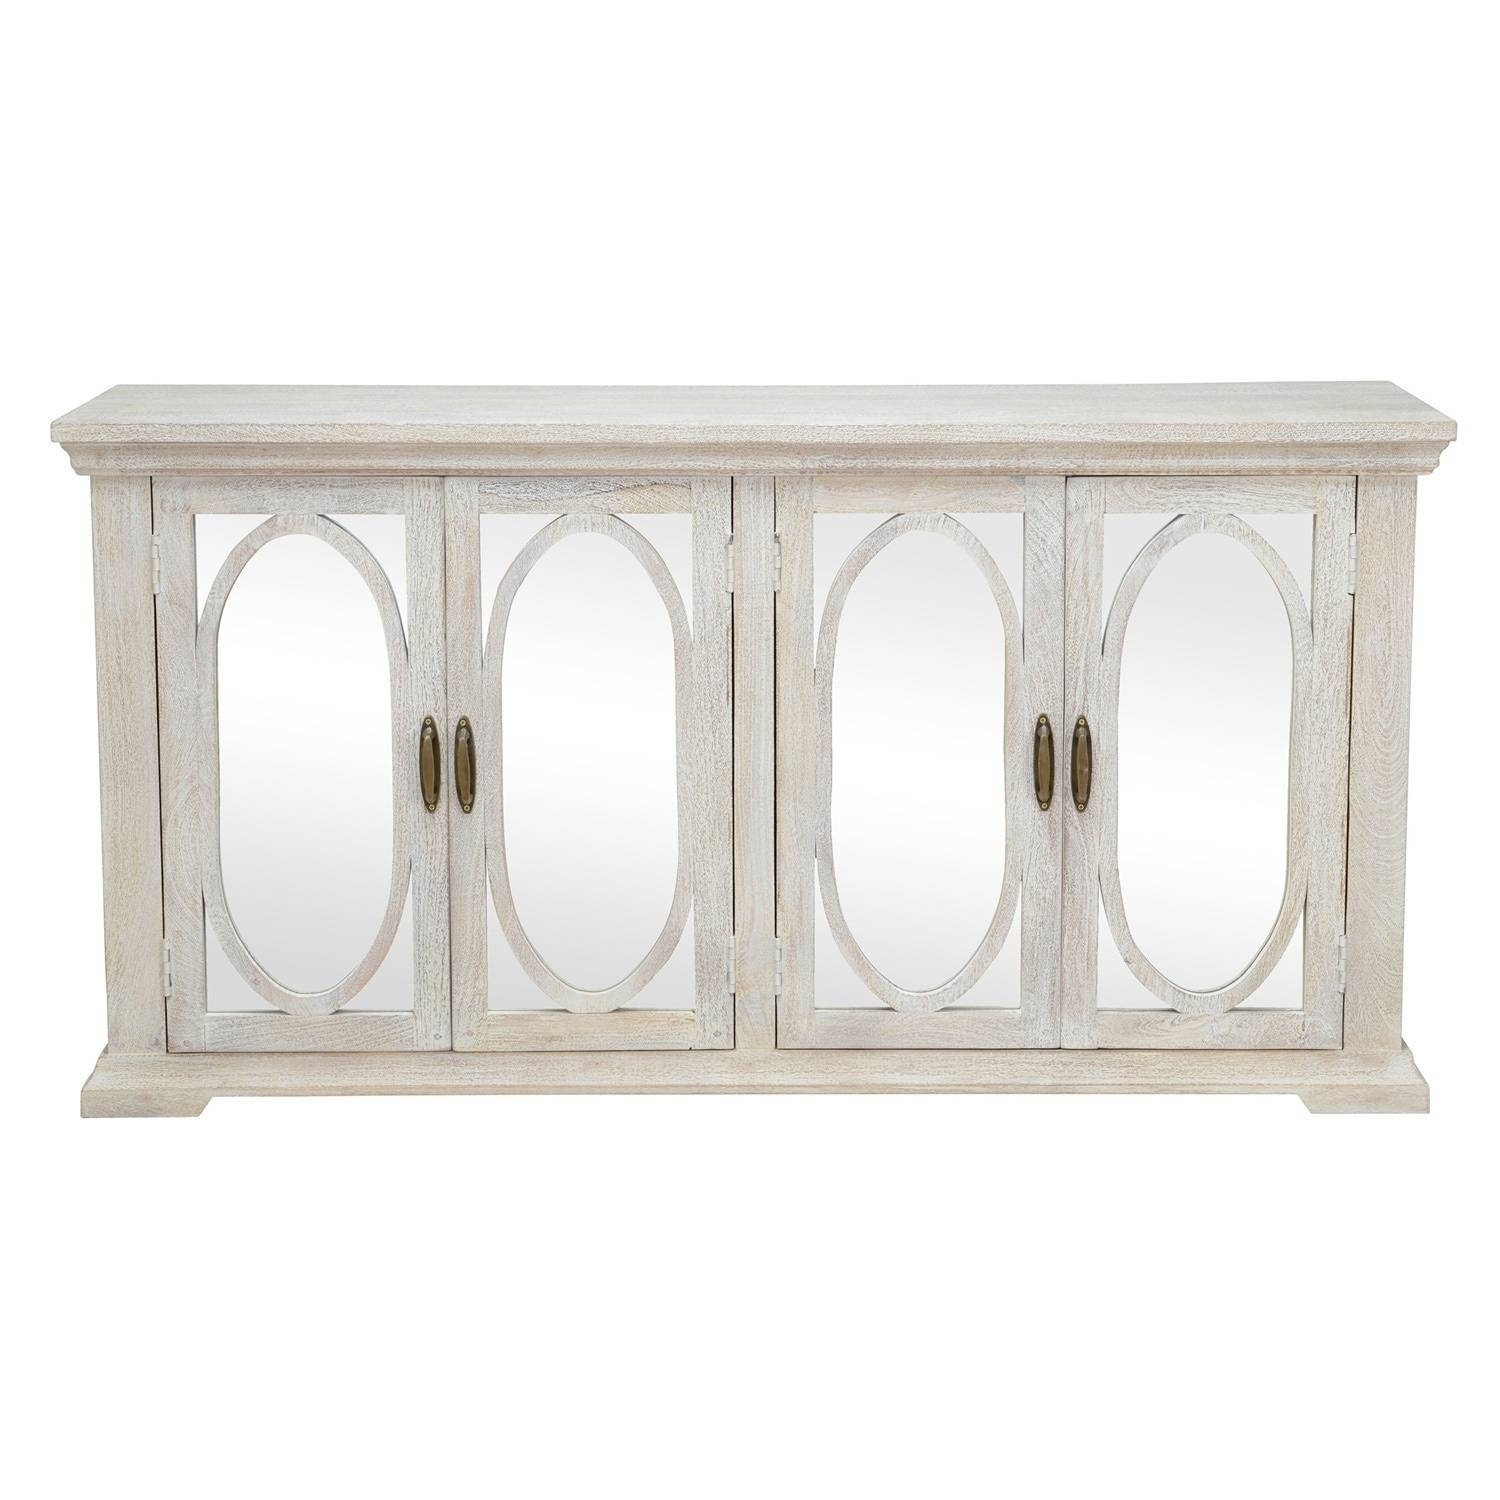 Manchester Wood Mirrored 70-Inch Sideboardkosas Home - Free in 70 Inch Sideboards (Image 4 of 15)